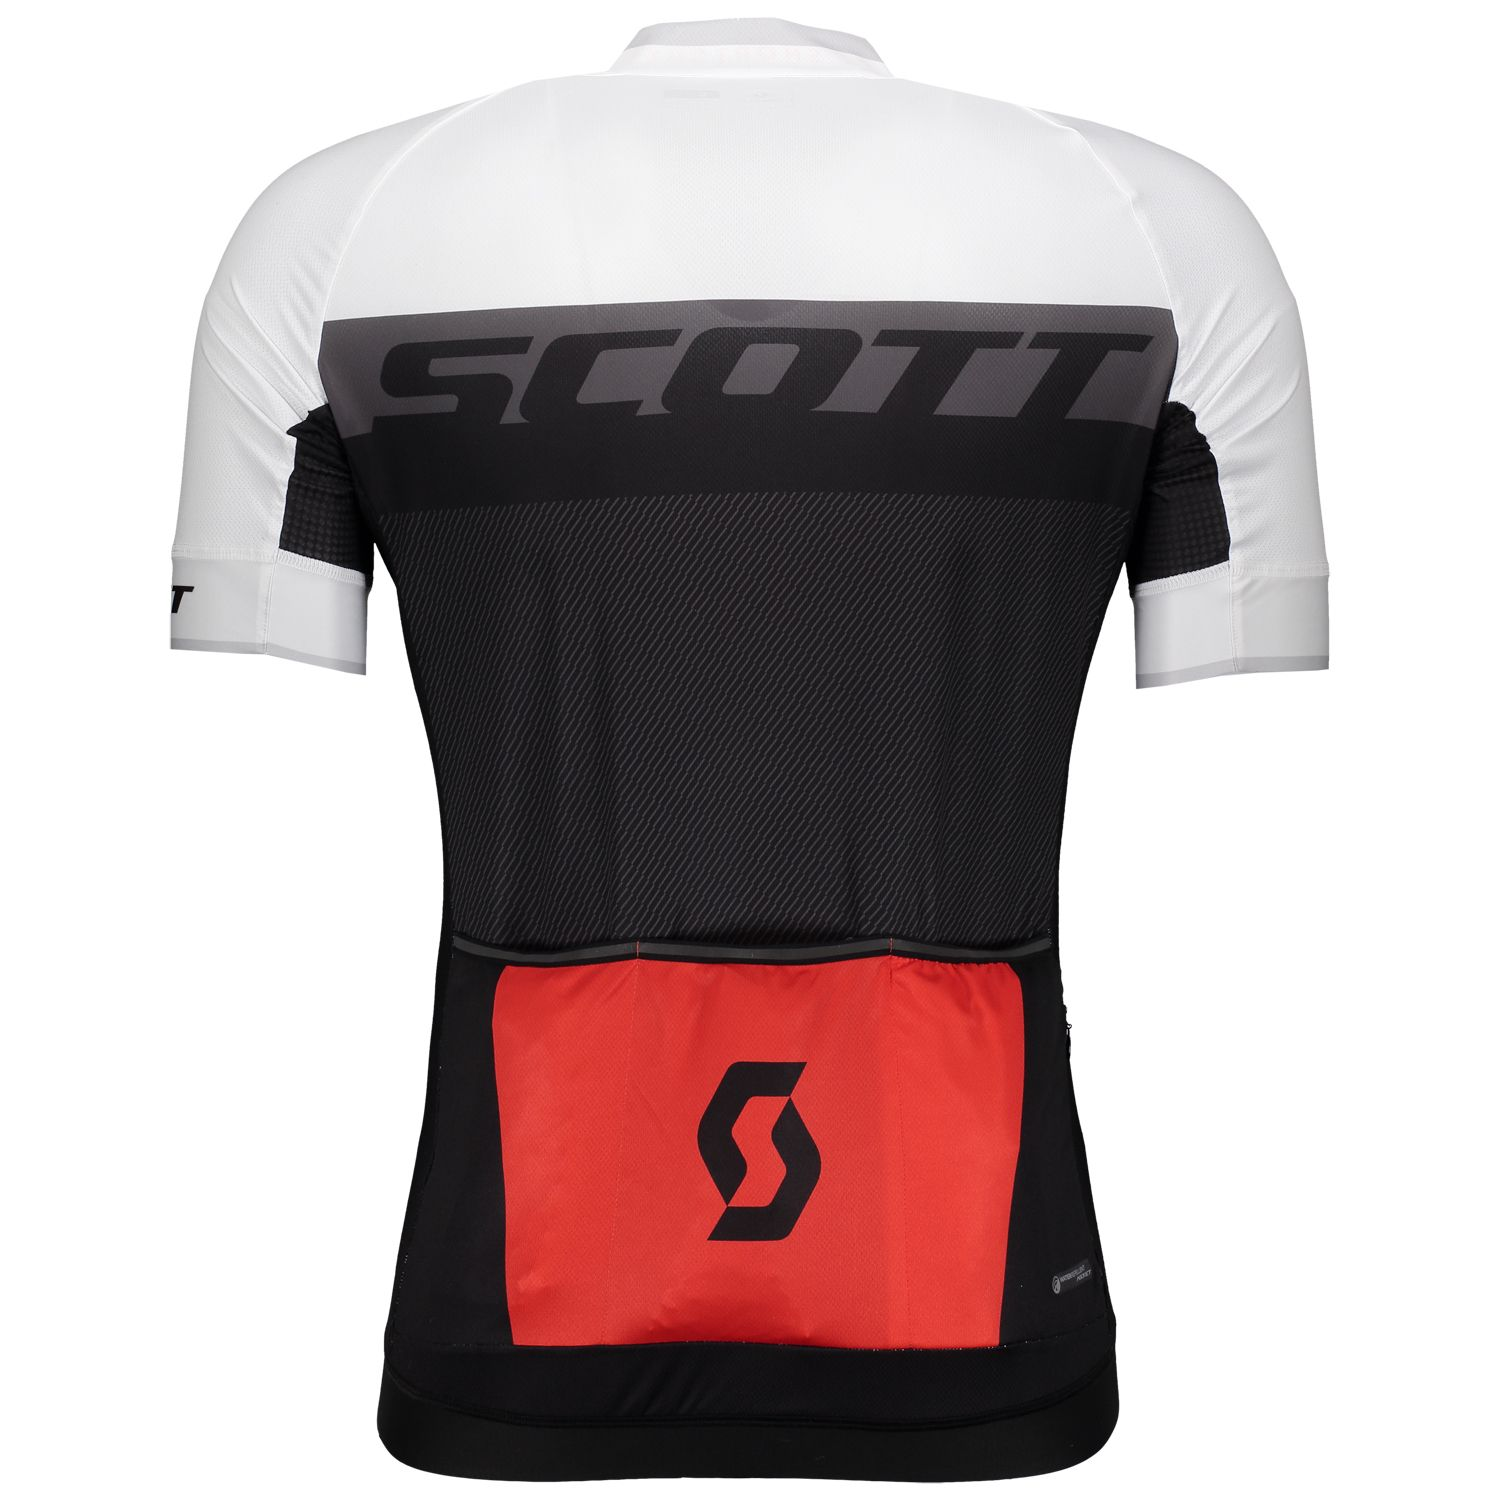 0ed396e10 ... short sleeve cycling jersey black fiery red (264821). Next